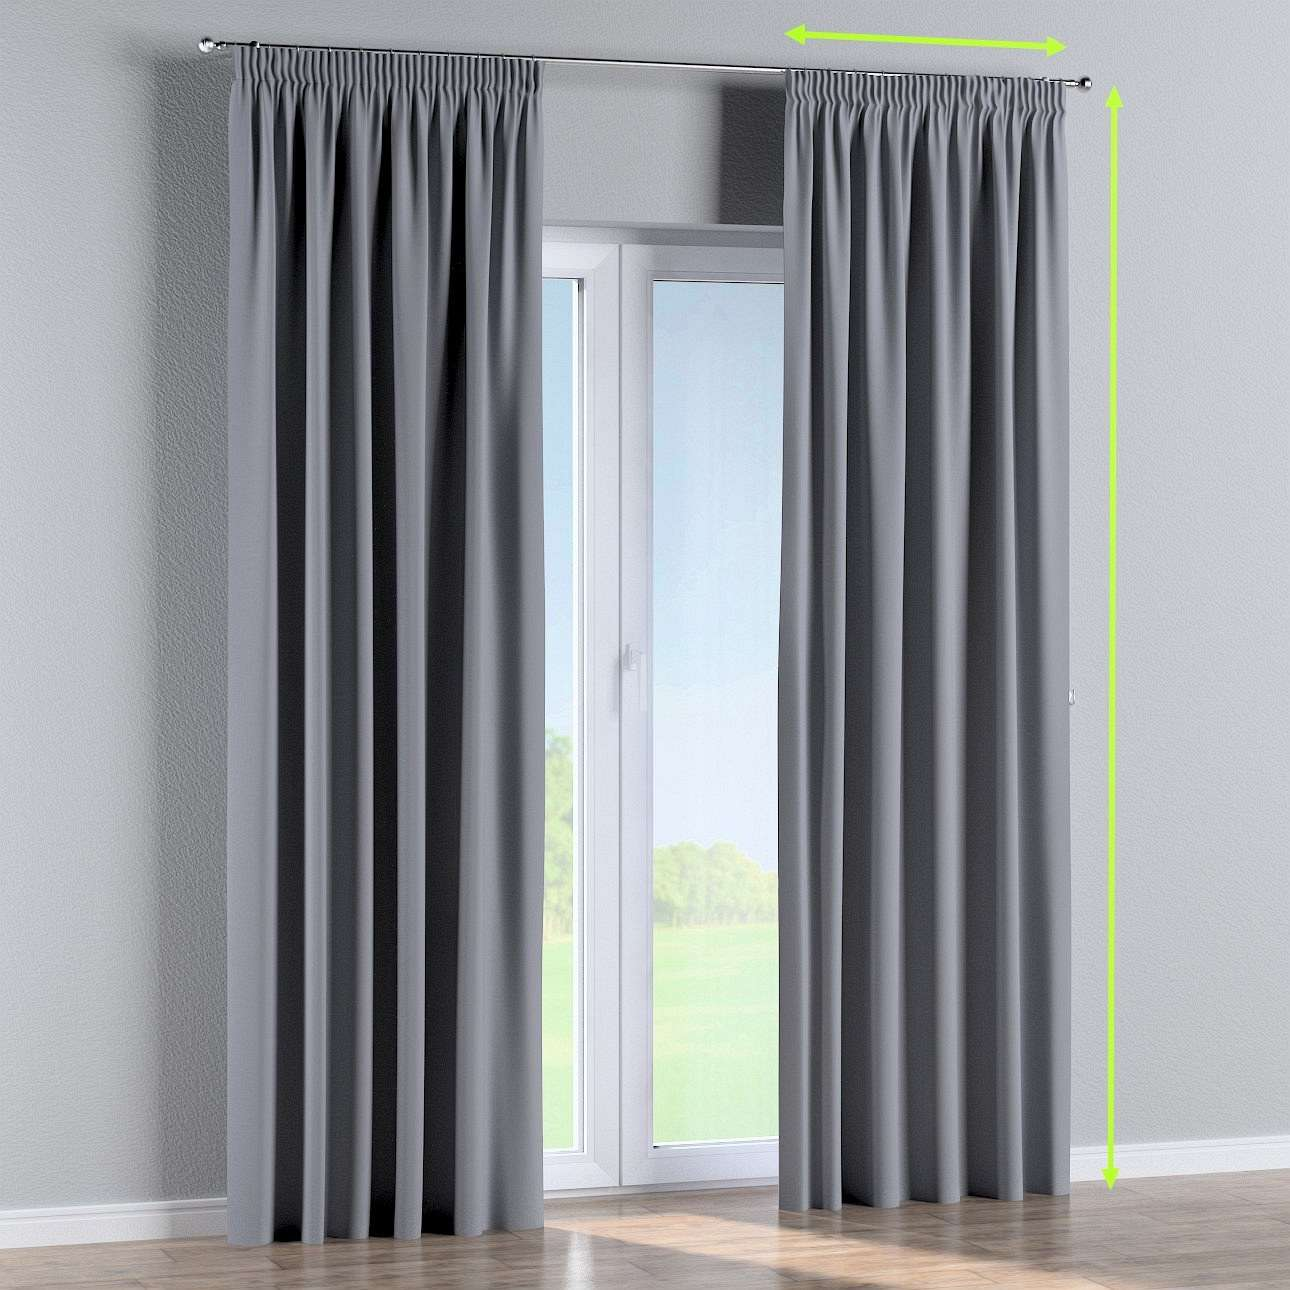 Pencil pleat curtains in collection Blackout, fabric: 269-96